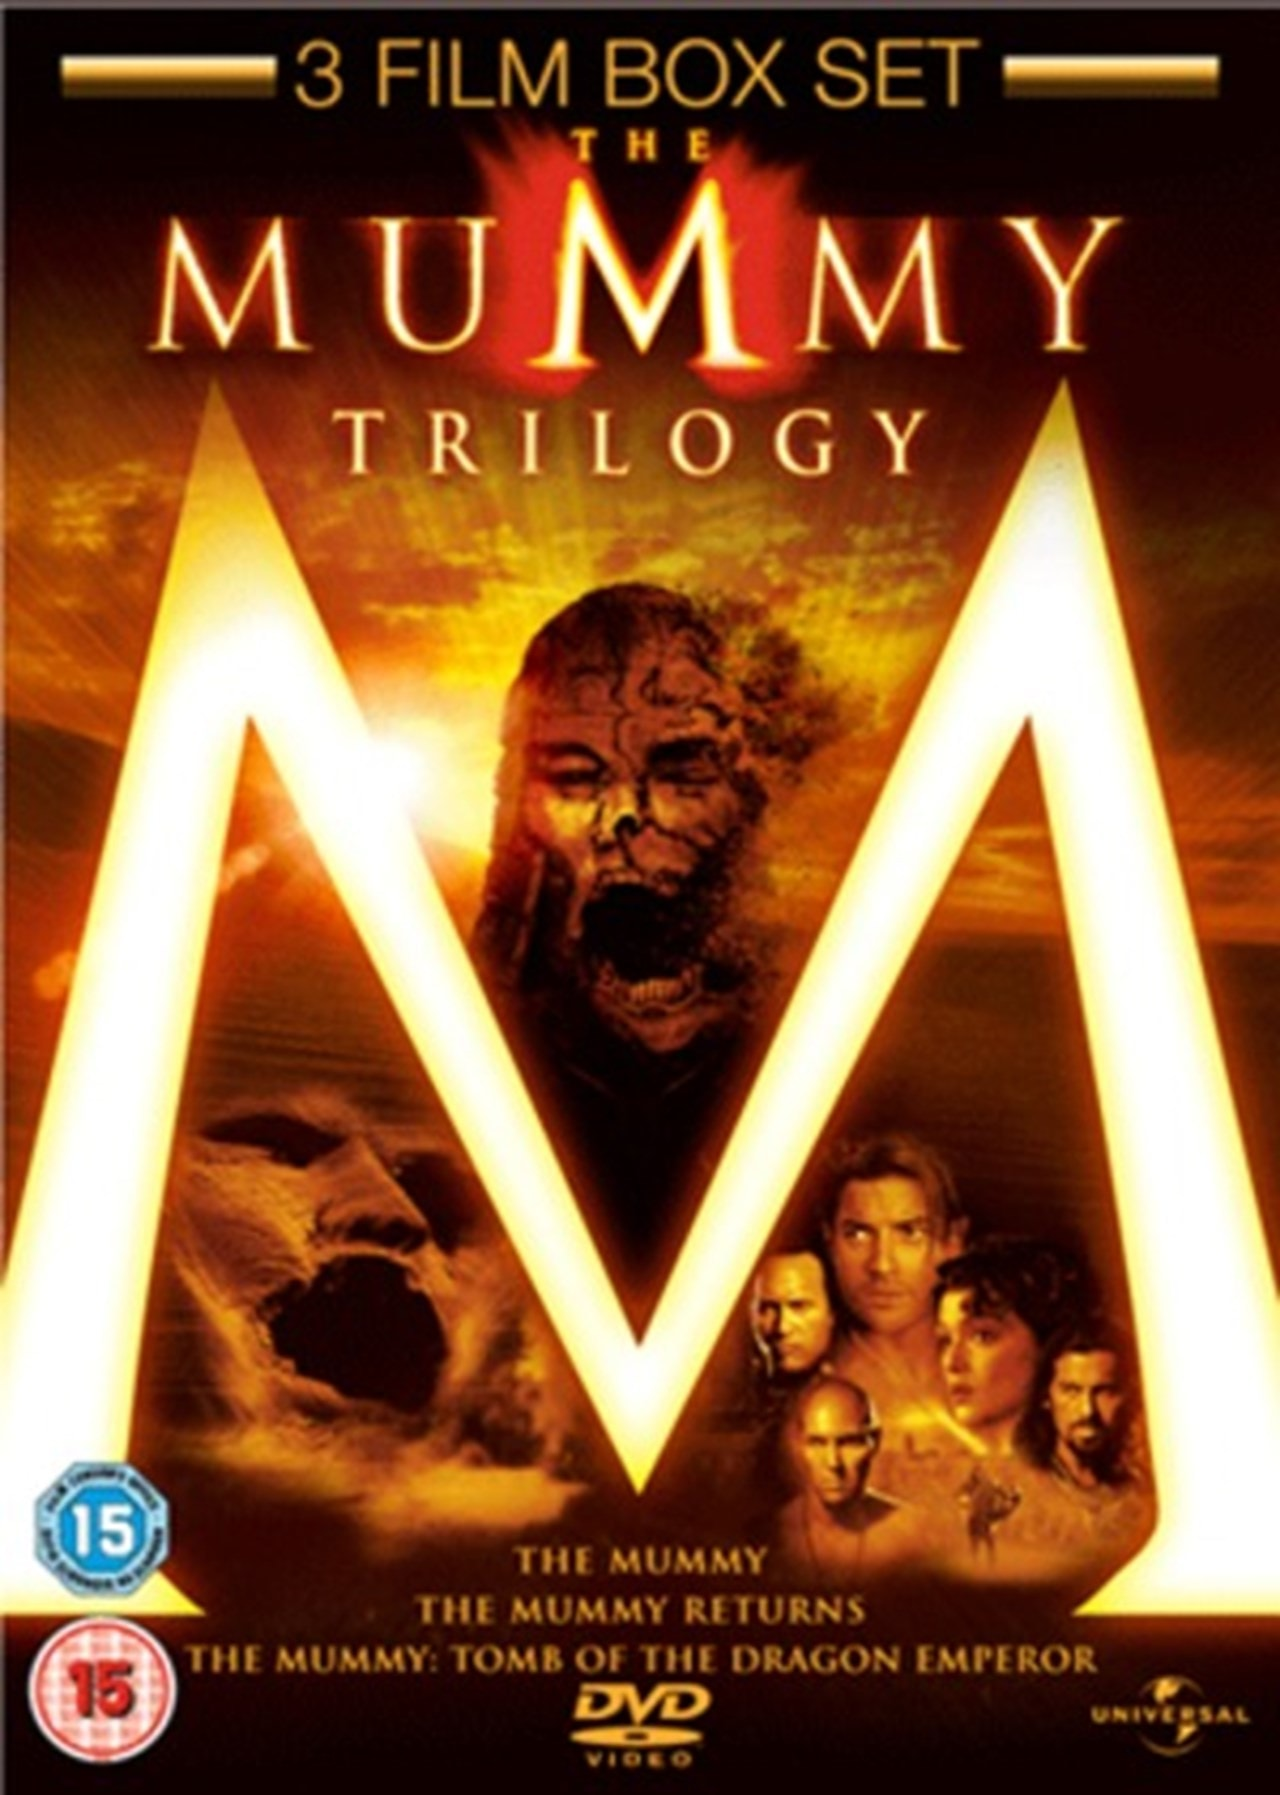 The Mummy/The Mummy Returns/The Mummy: Tomb of the Dragon Emperor - 1